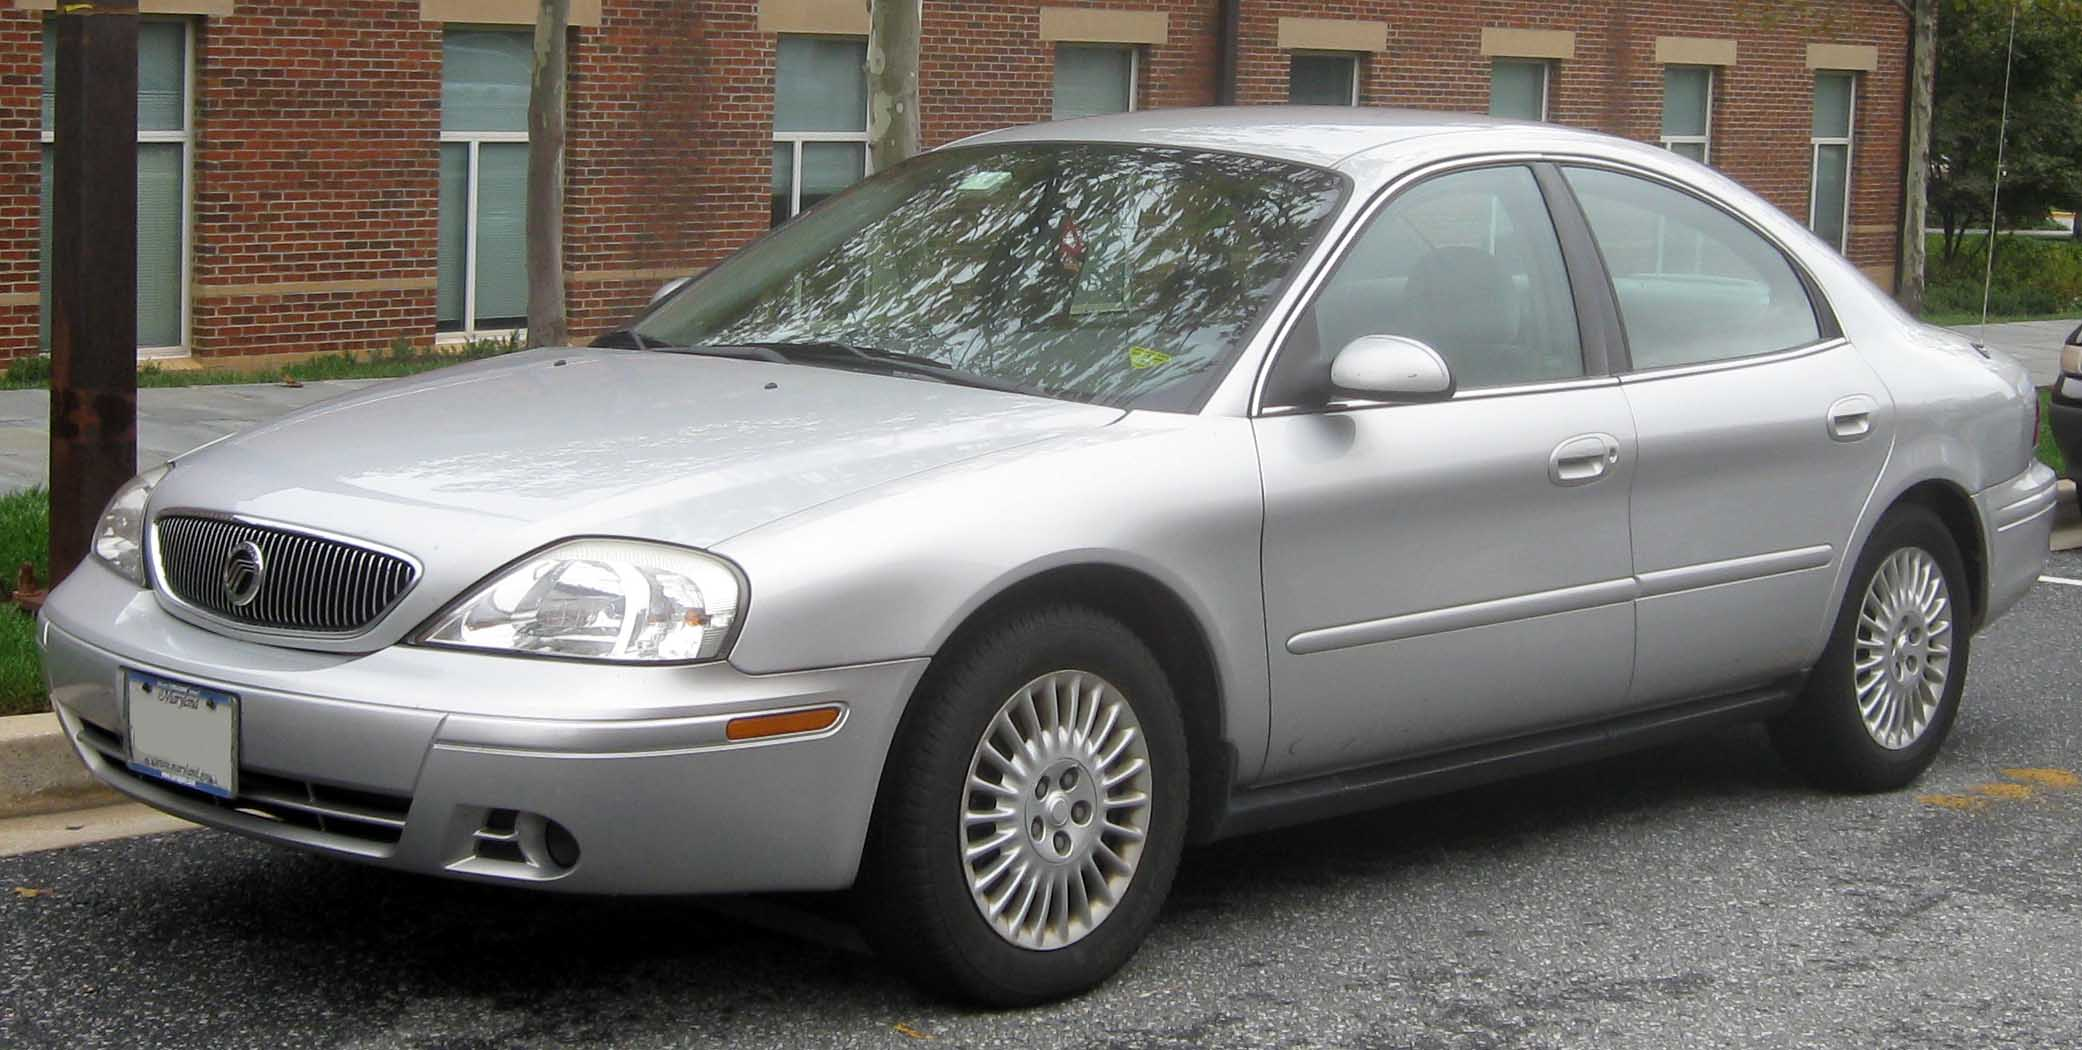 Mercury Sable #23